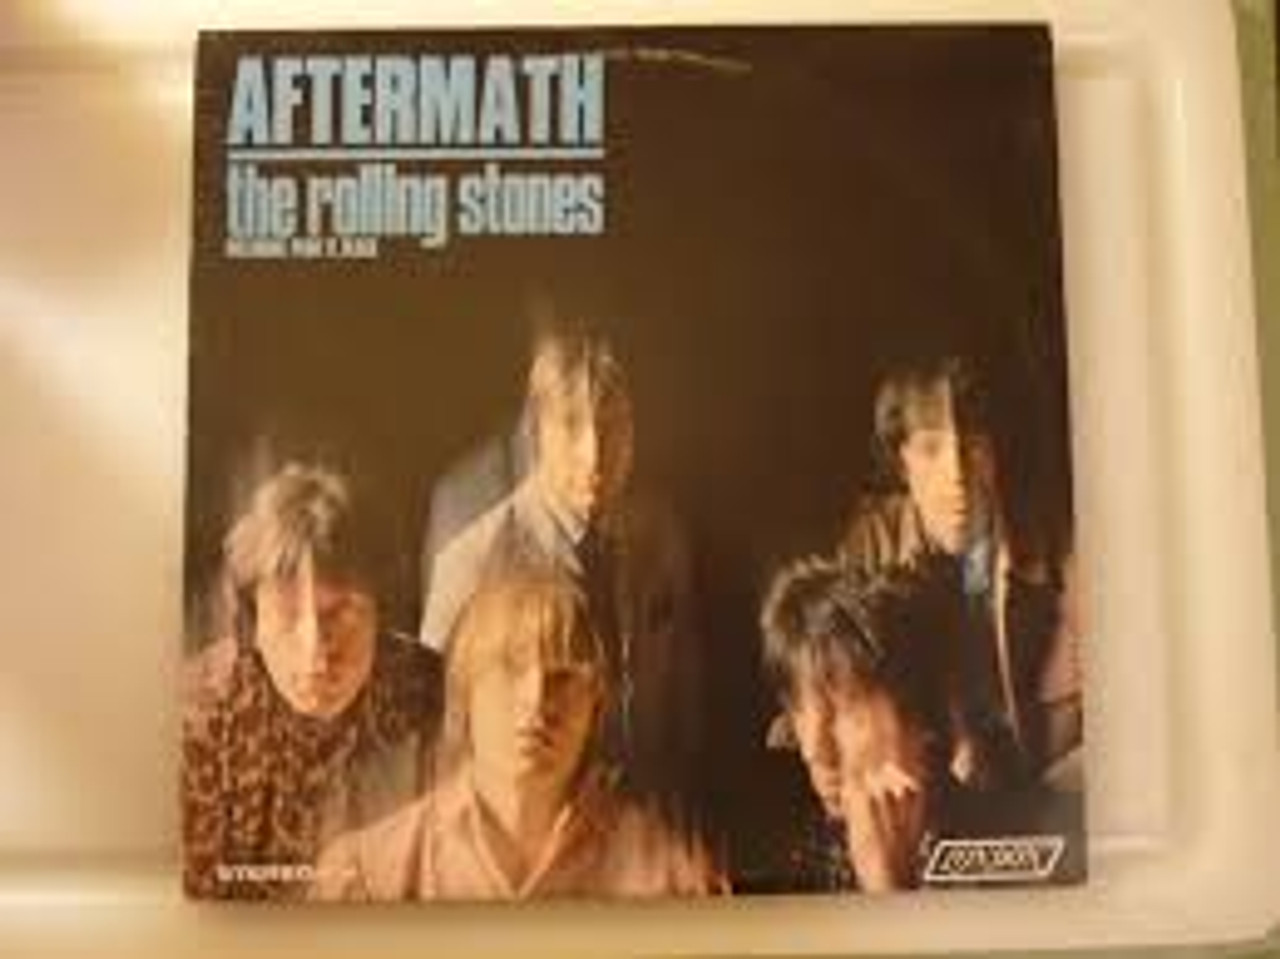 AFTERMATH Rolling Stones - '60s London Label Release, Clean Vinyl